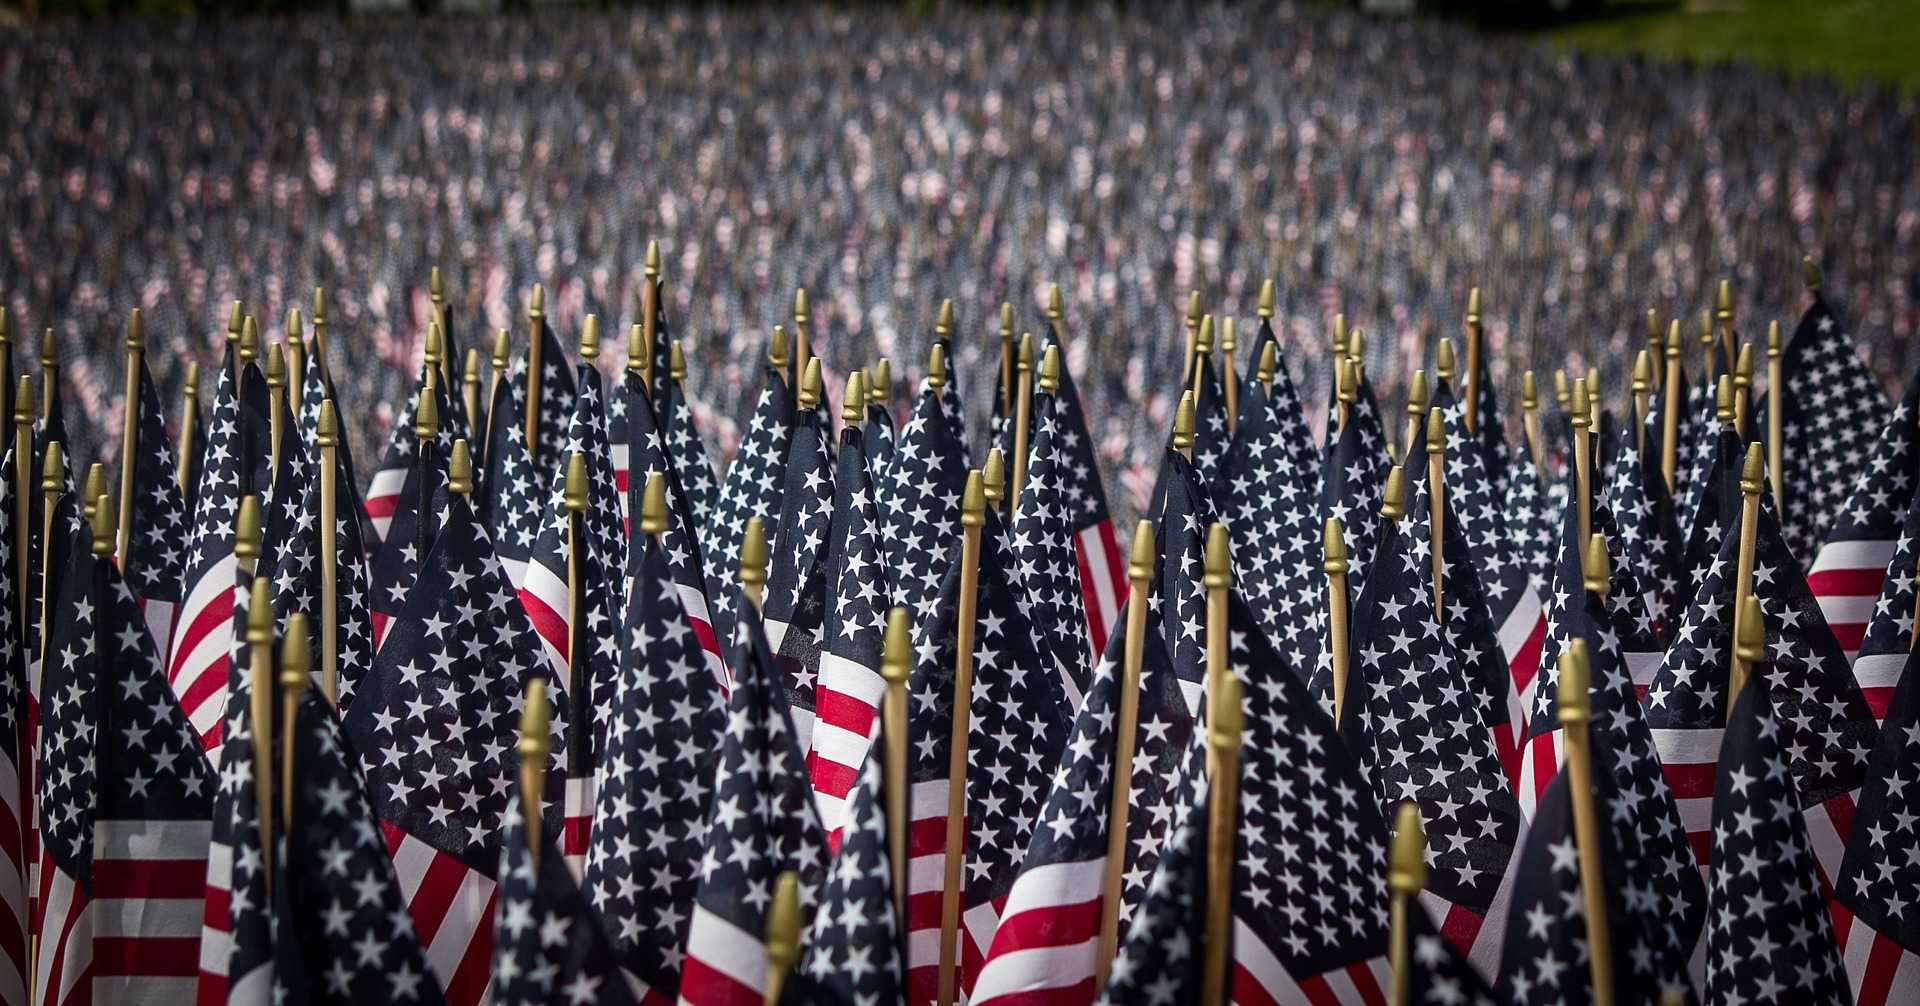 The flag code: what disrespects the American flag and what doesn't